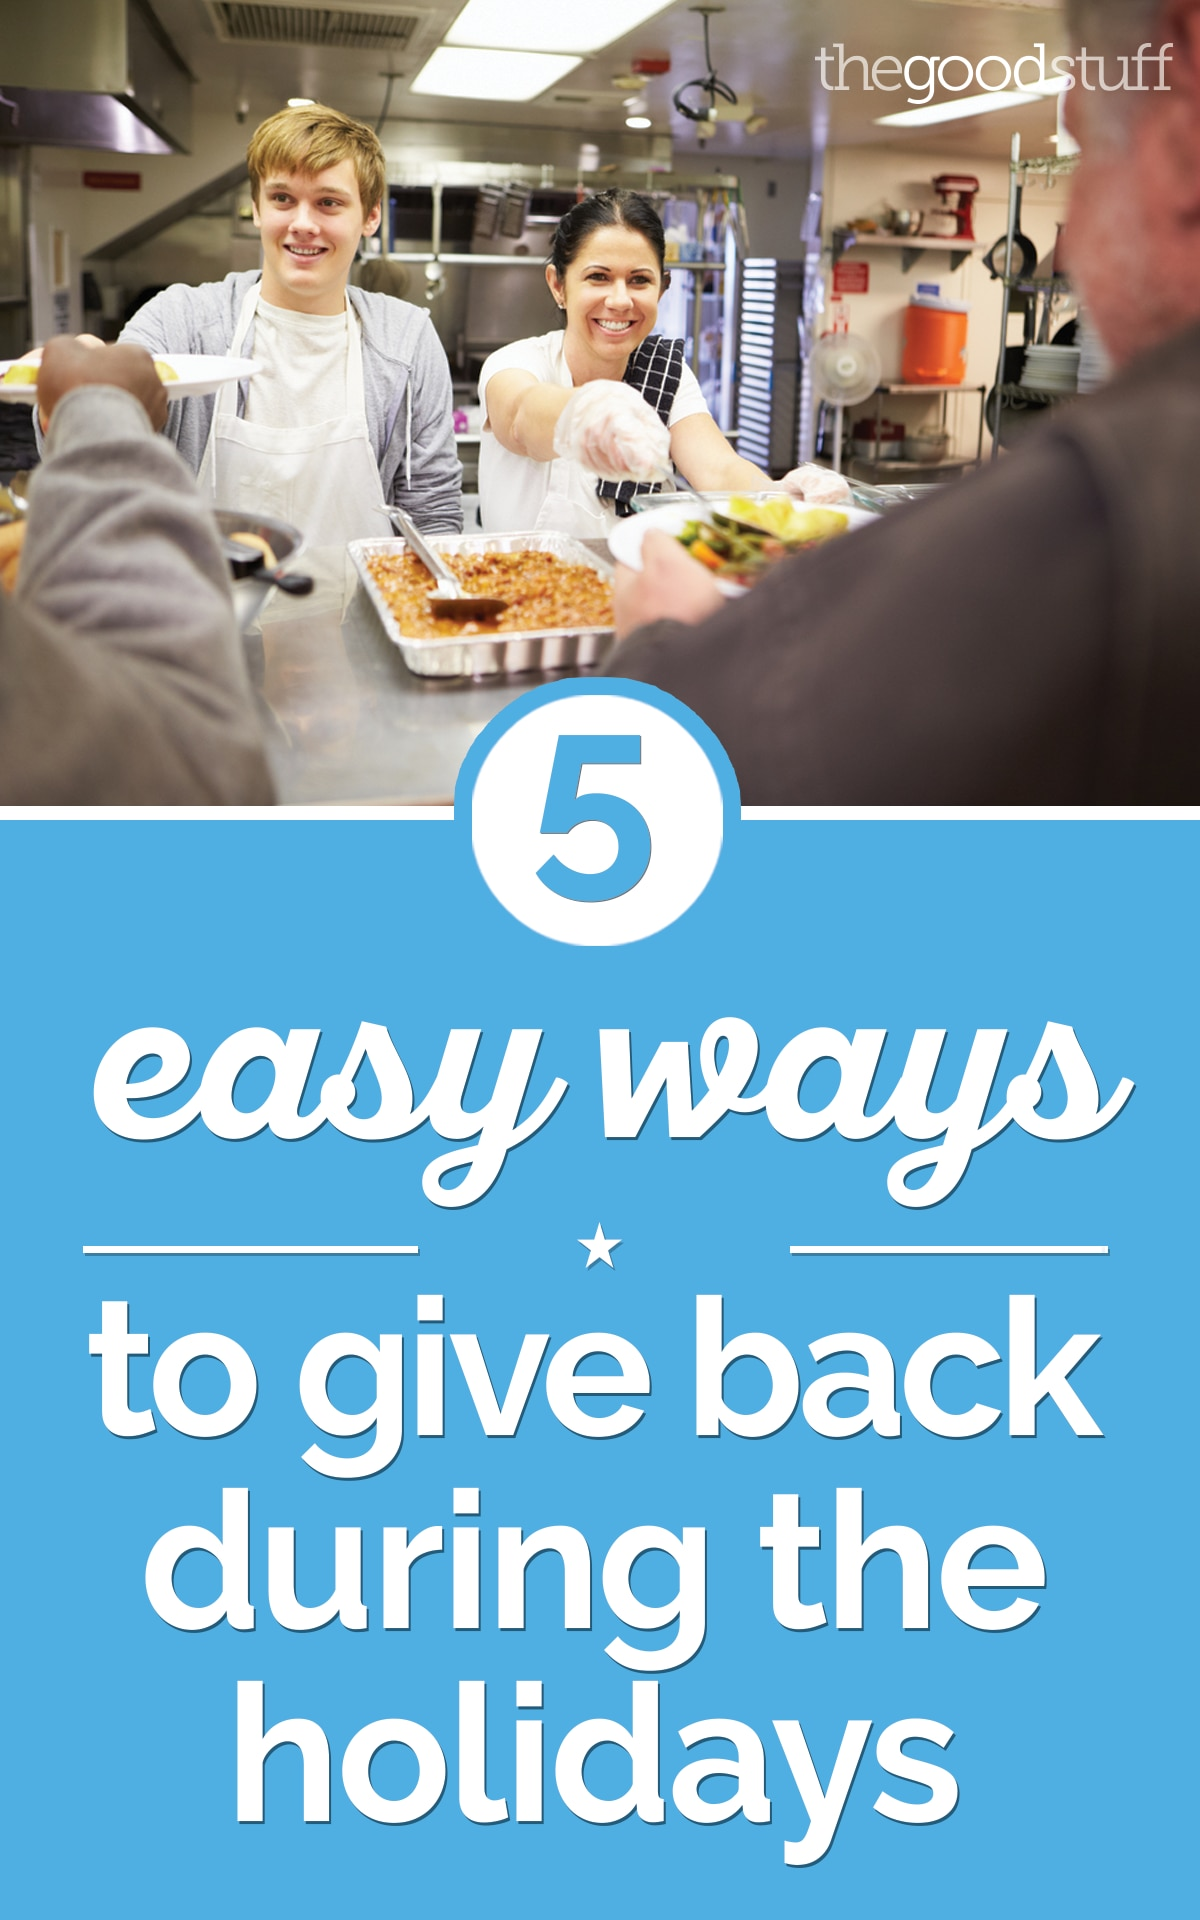 5 Easy Ways to Give Back During the Holidays | thegoodstuff